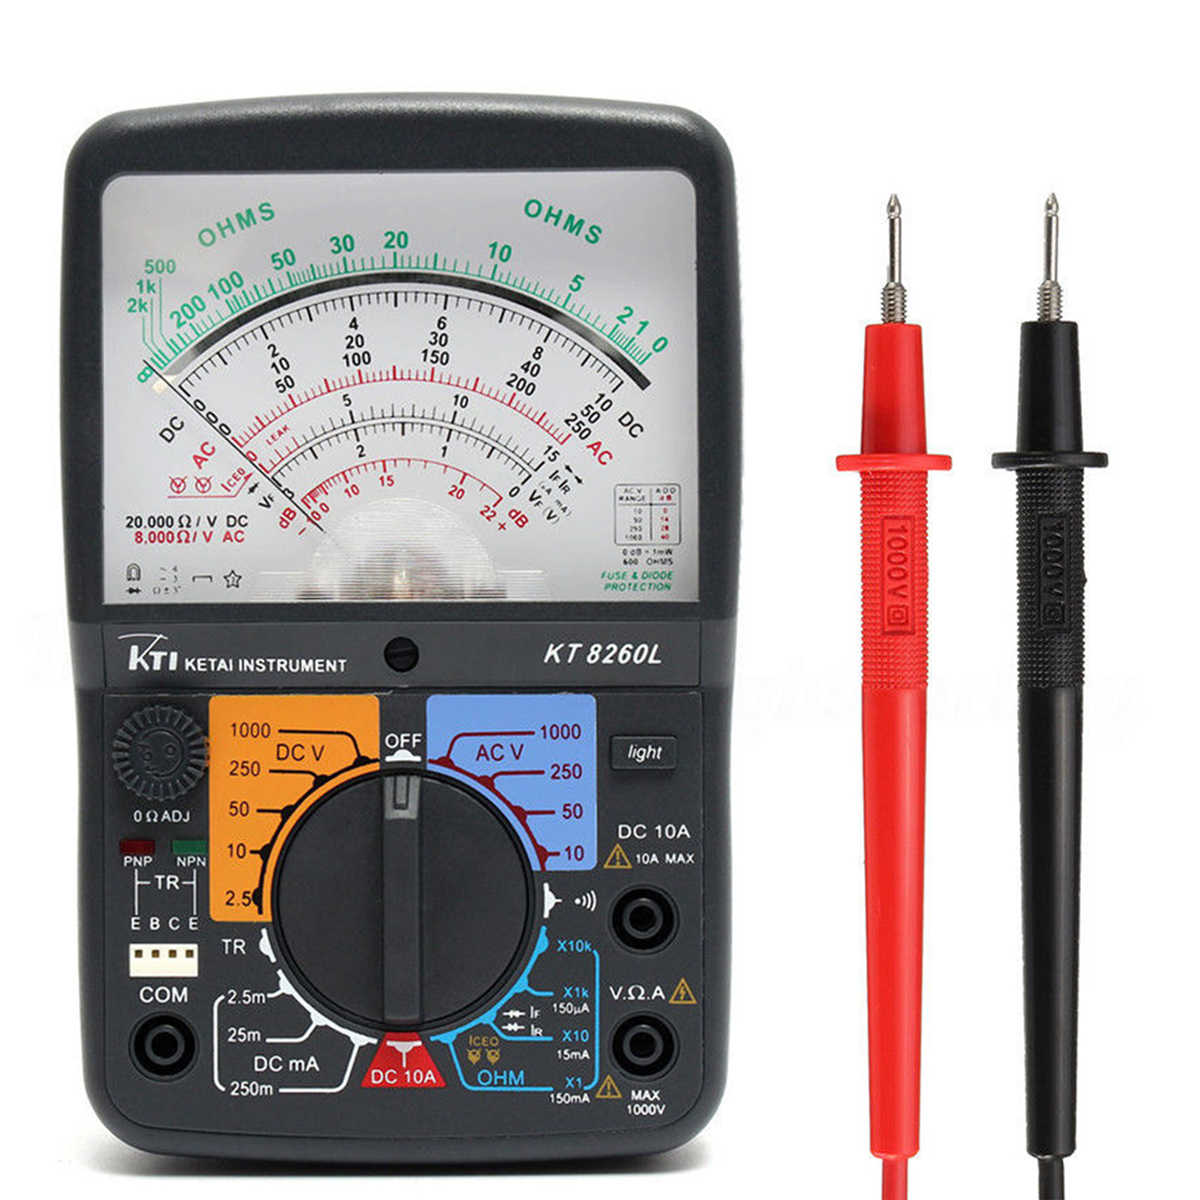 KT8260LDigital Analog Multimeter ACV/DCV/DCA/Electric Resistance Tester  + 2pcs Test Pen For Measurment Tools